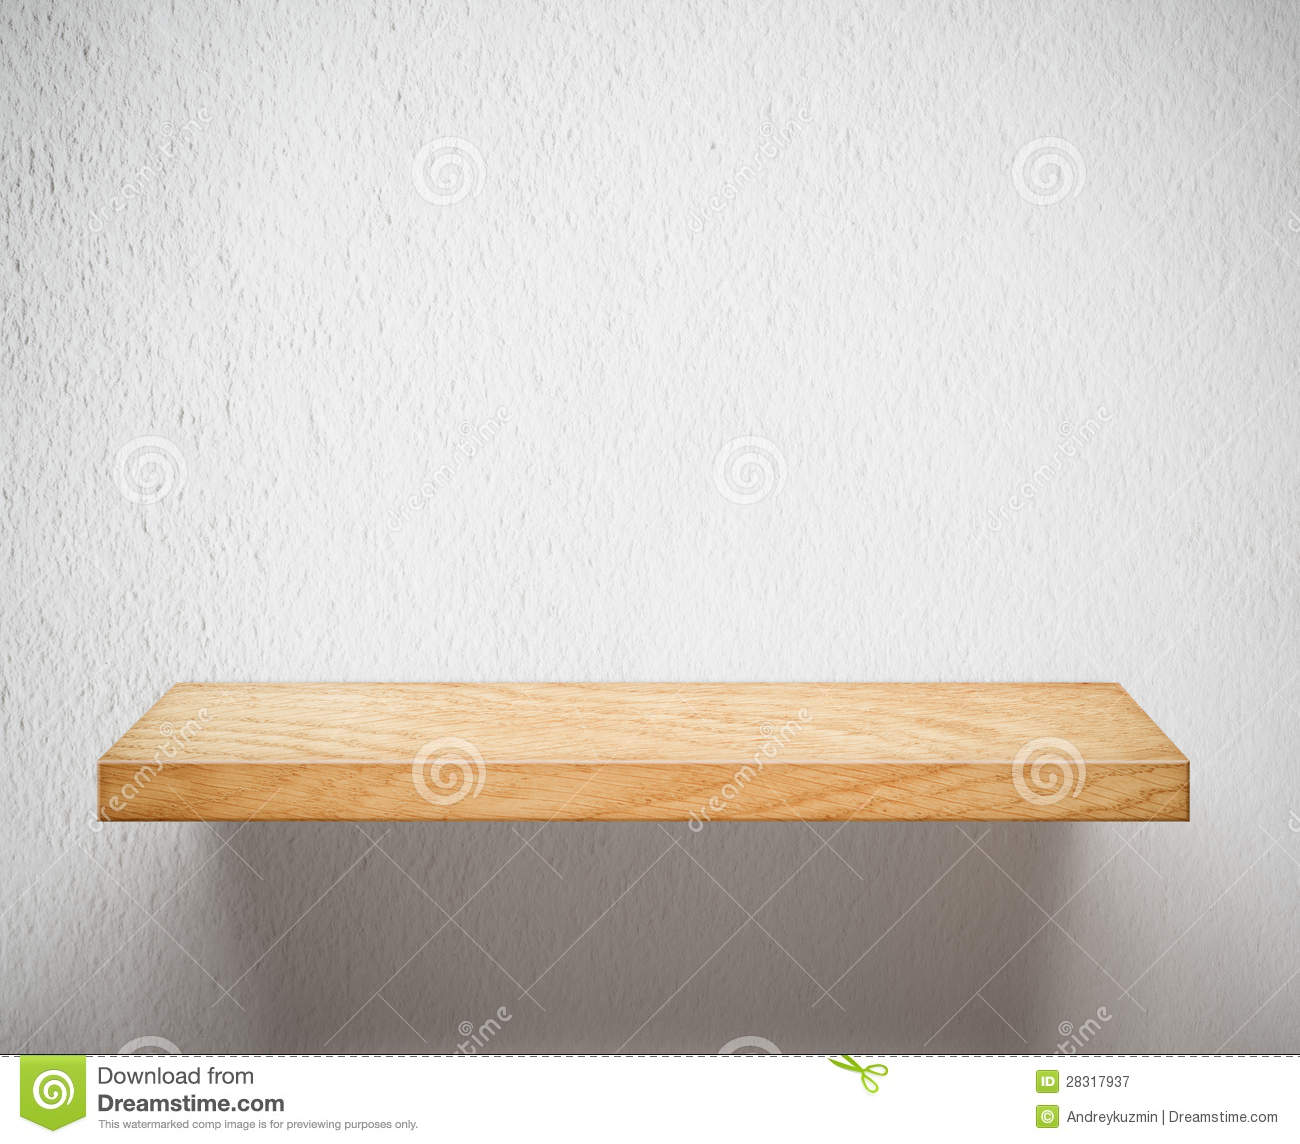 Free Stock Photography  Empty Wooden Shelf Or Bookshelf On White Wall